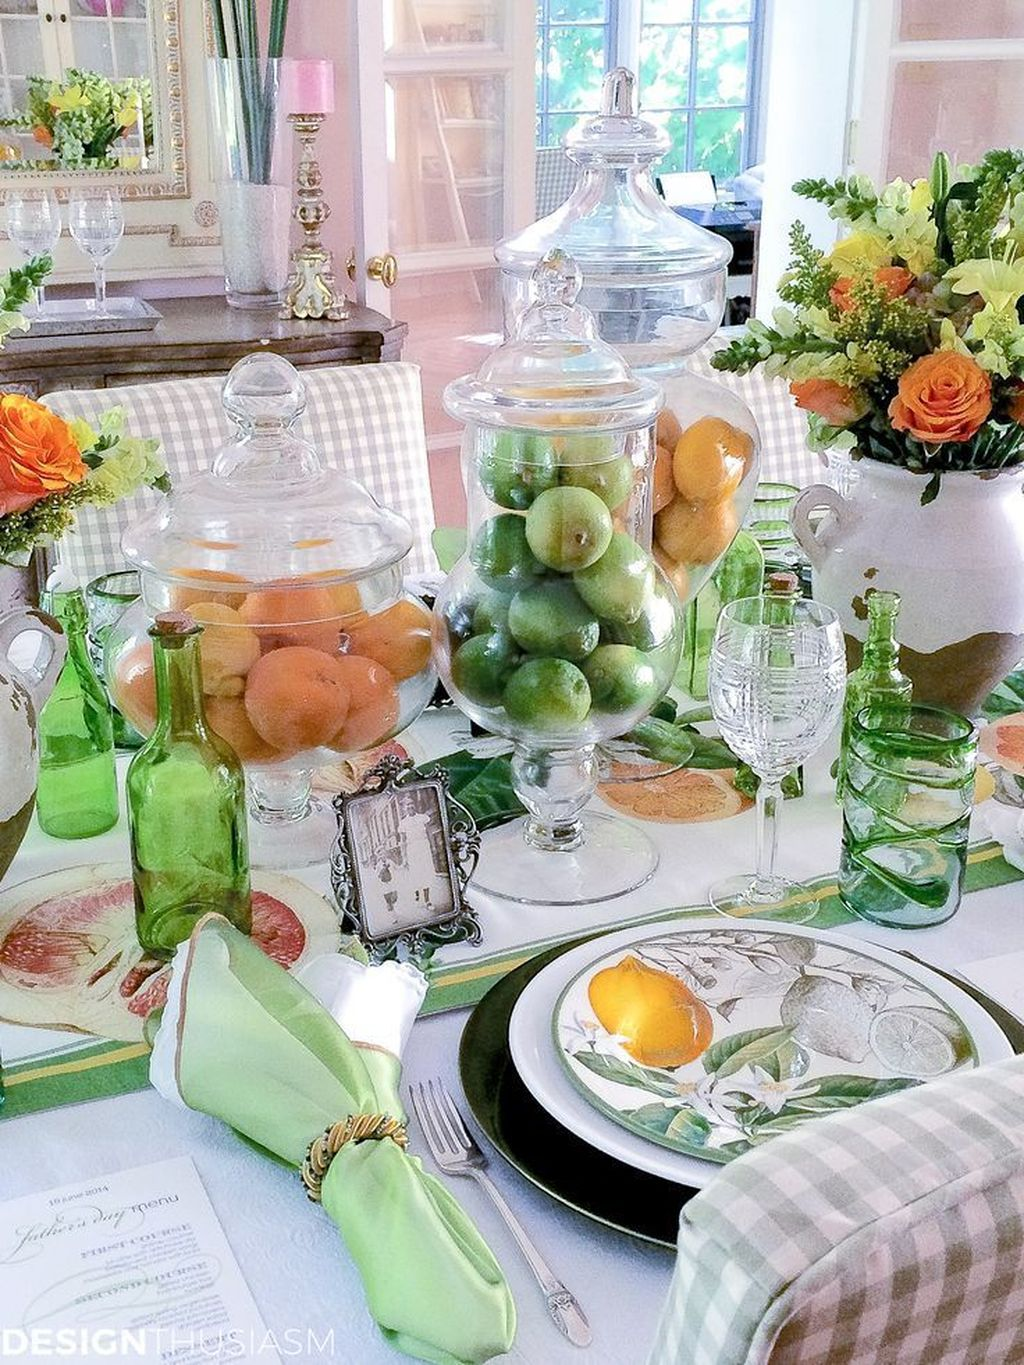 Amazing Summer Tablescapes For Dining Room Decor 20